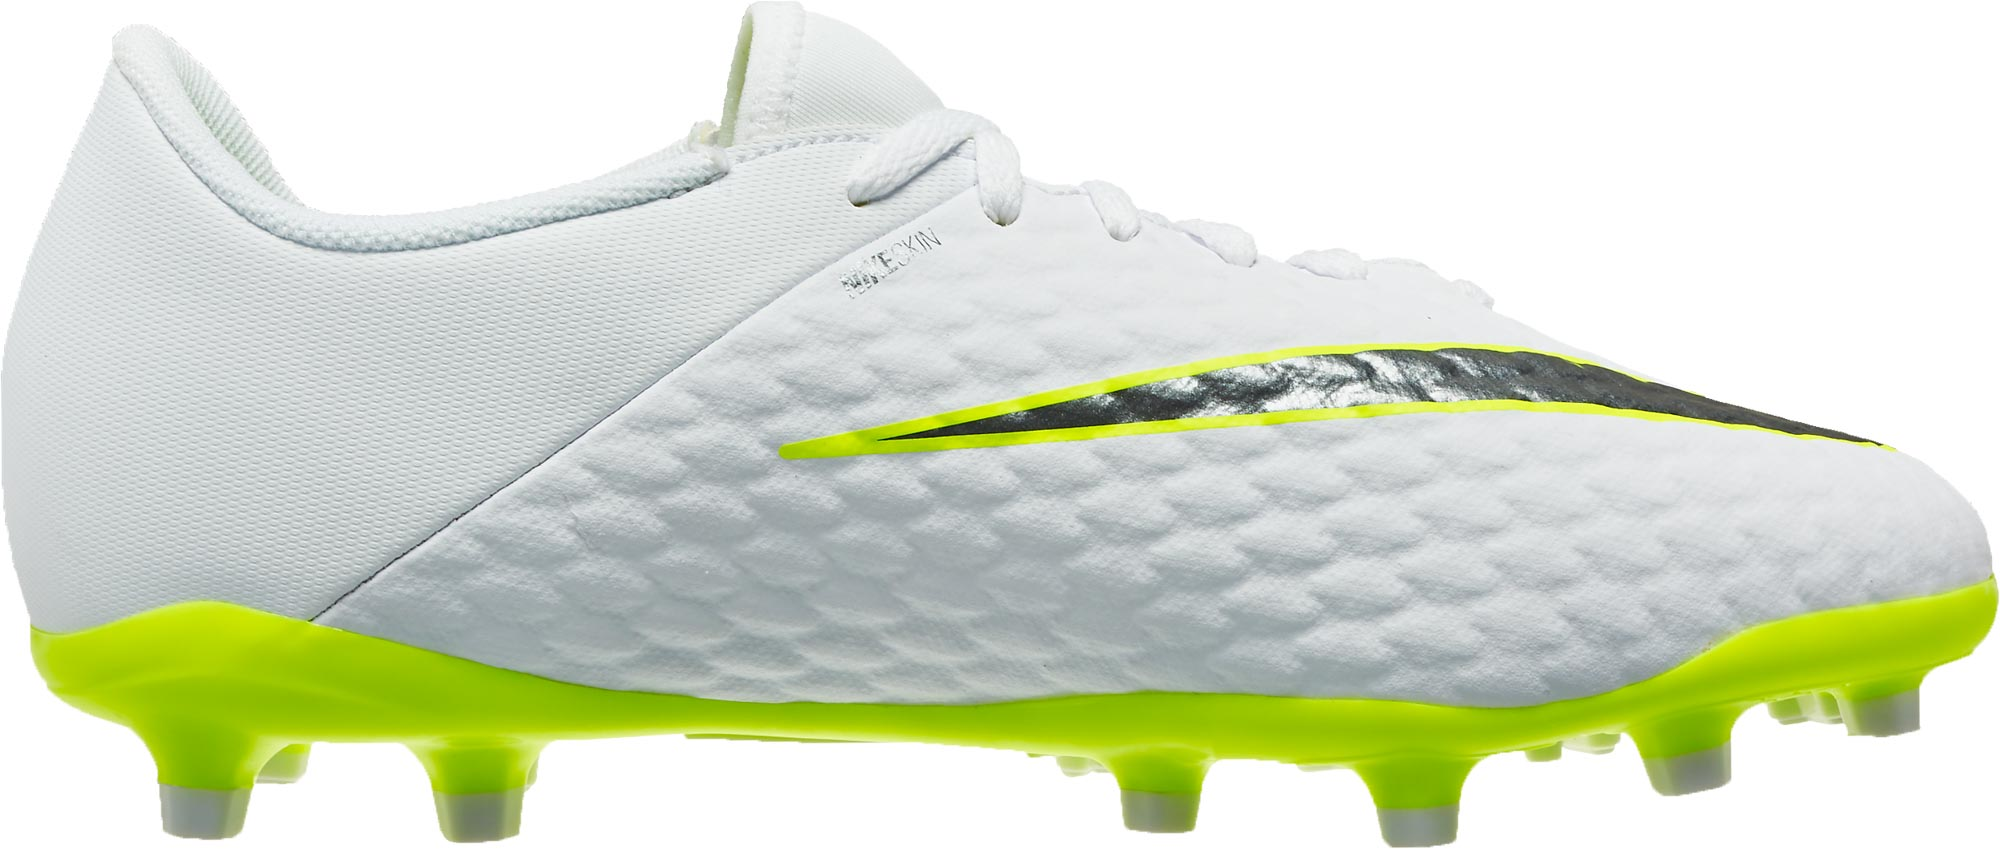 huge selection of 183ec 30ca9 Nike Hypervenom Phantom 3 Academy FG - Youth - White/Metallic Cool  Grey/Volt - Soccer Master